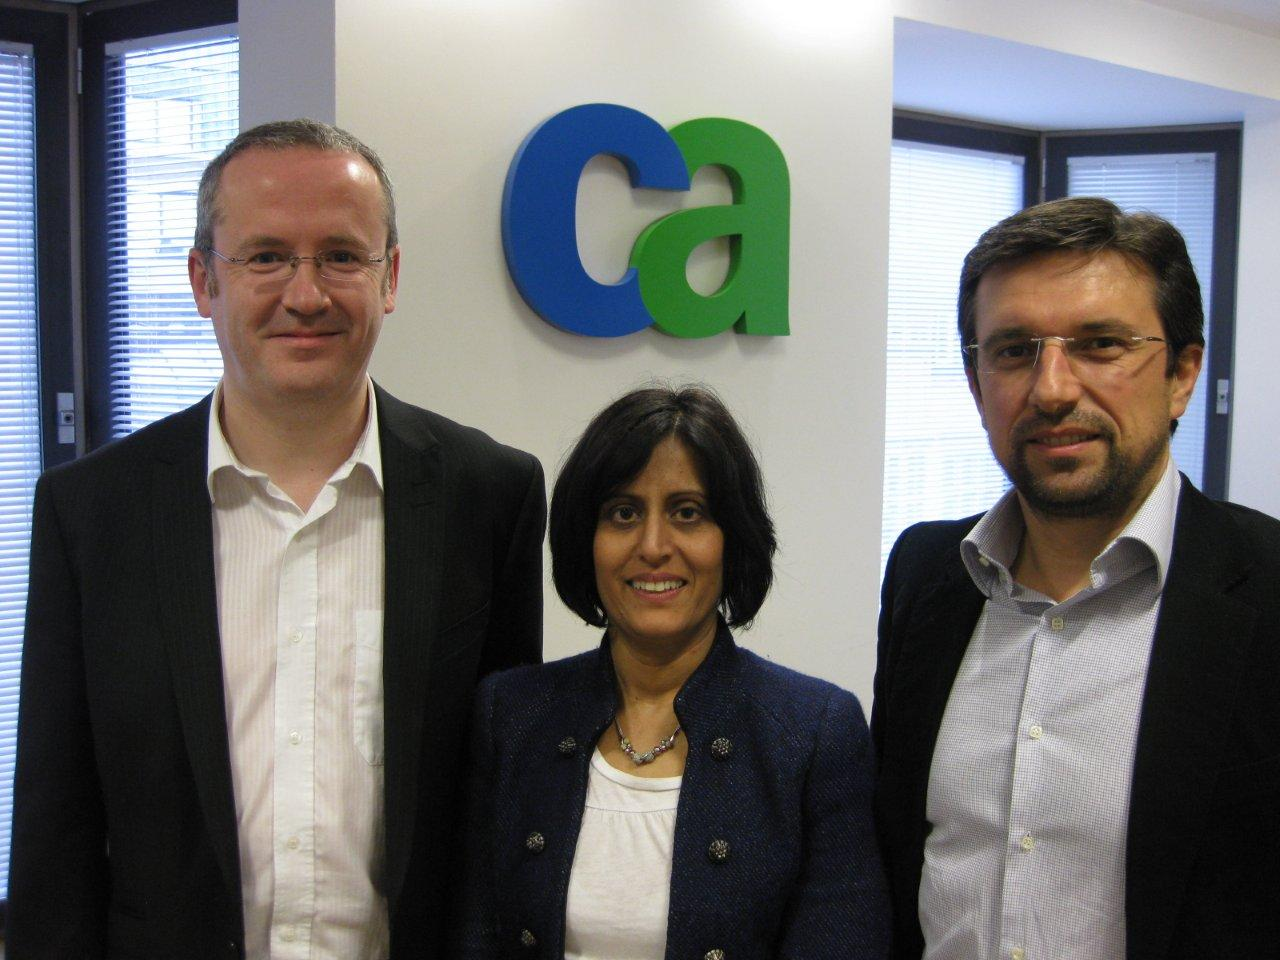 Pictured left to right Chris Rowett, Ritu Mahandru and Paolo Restagno 